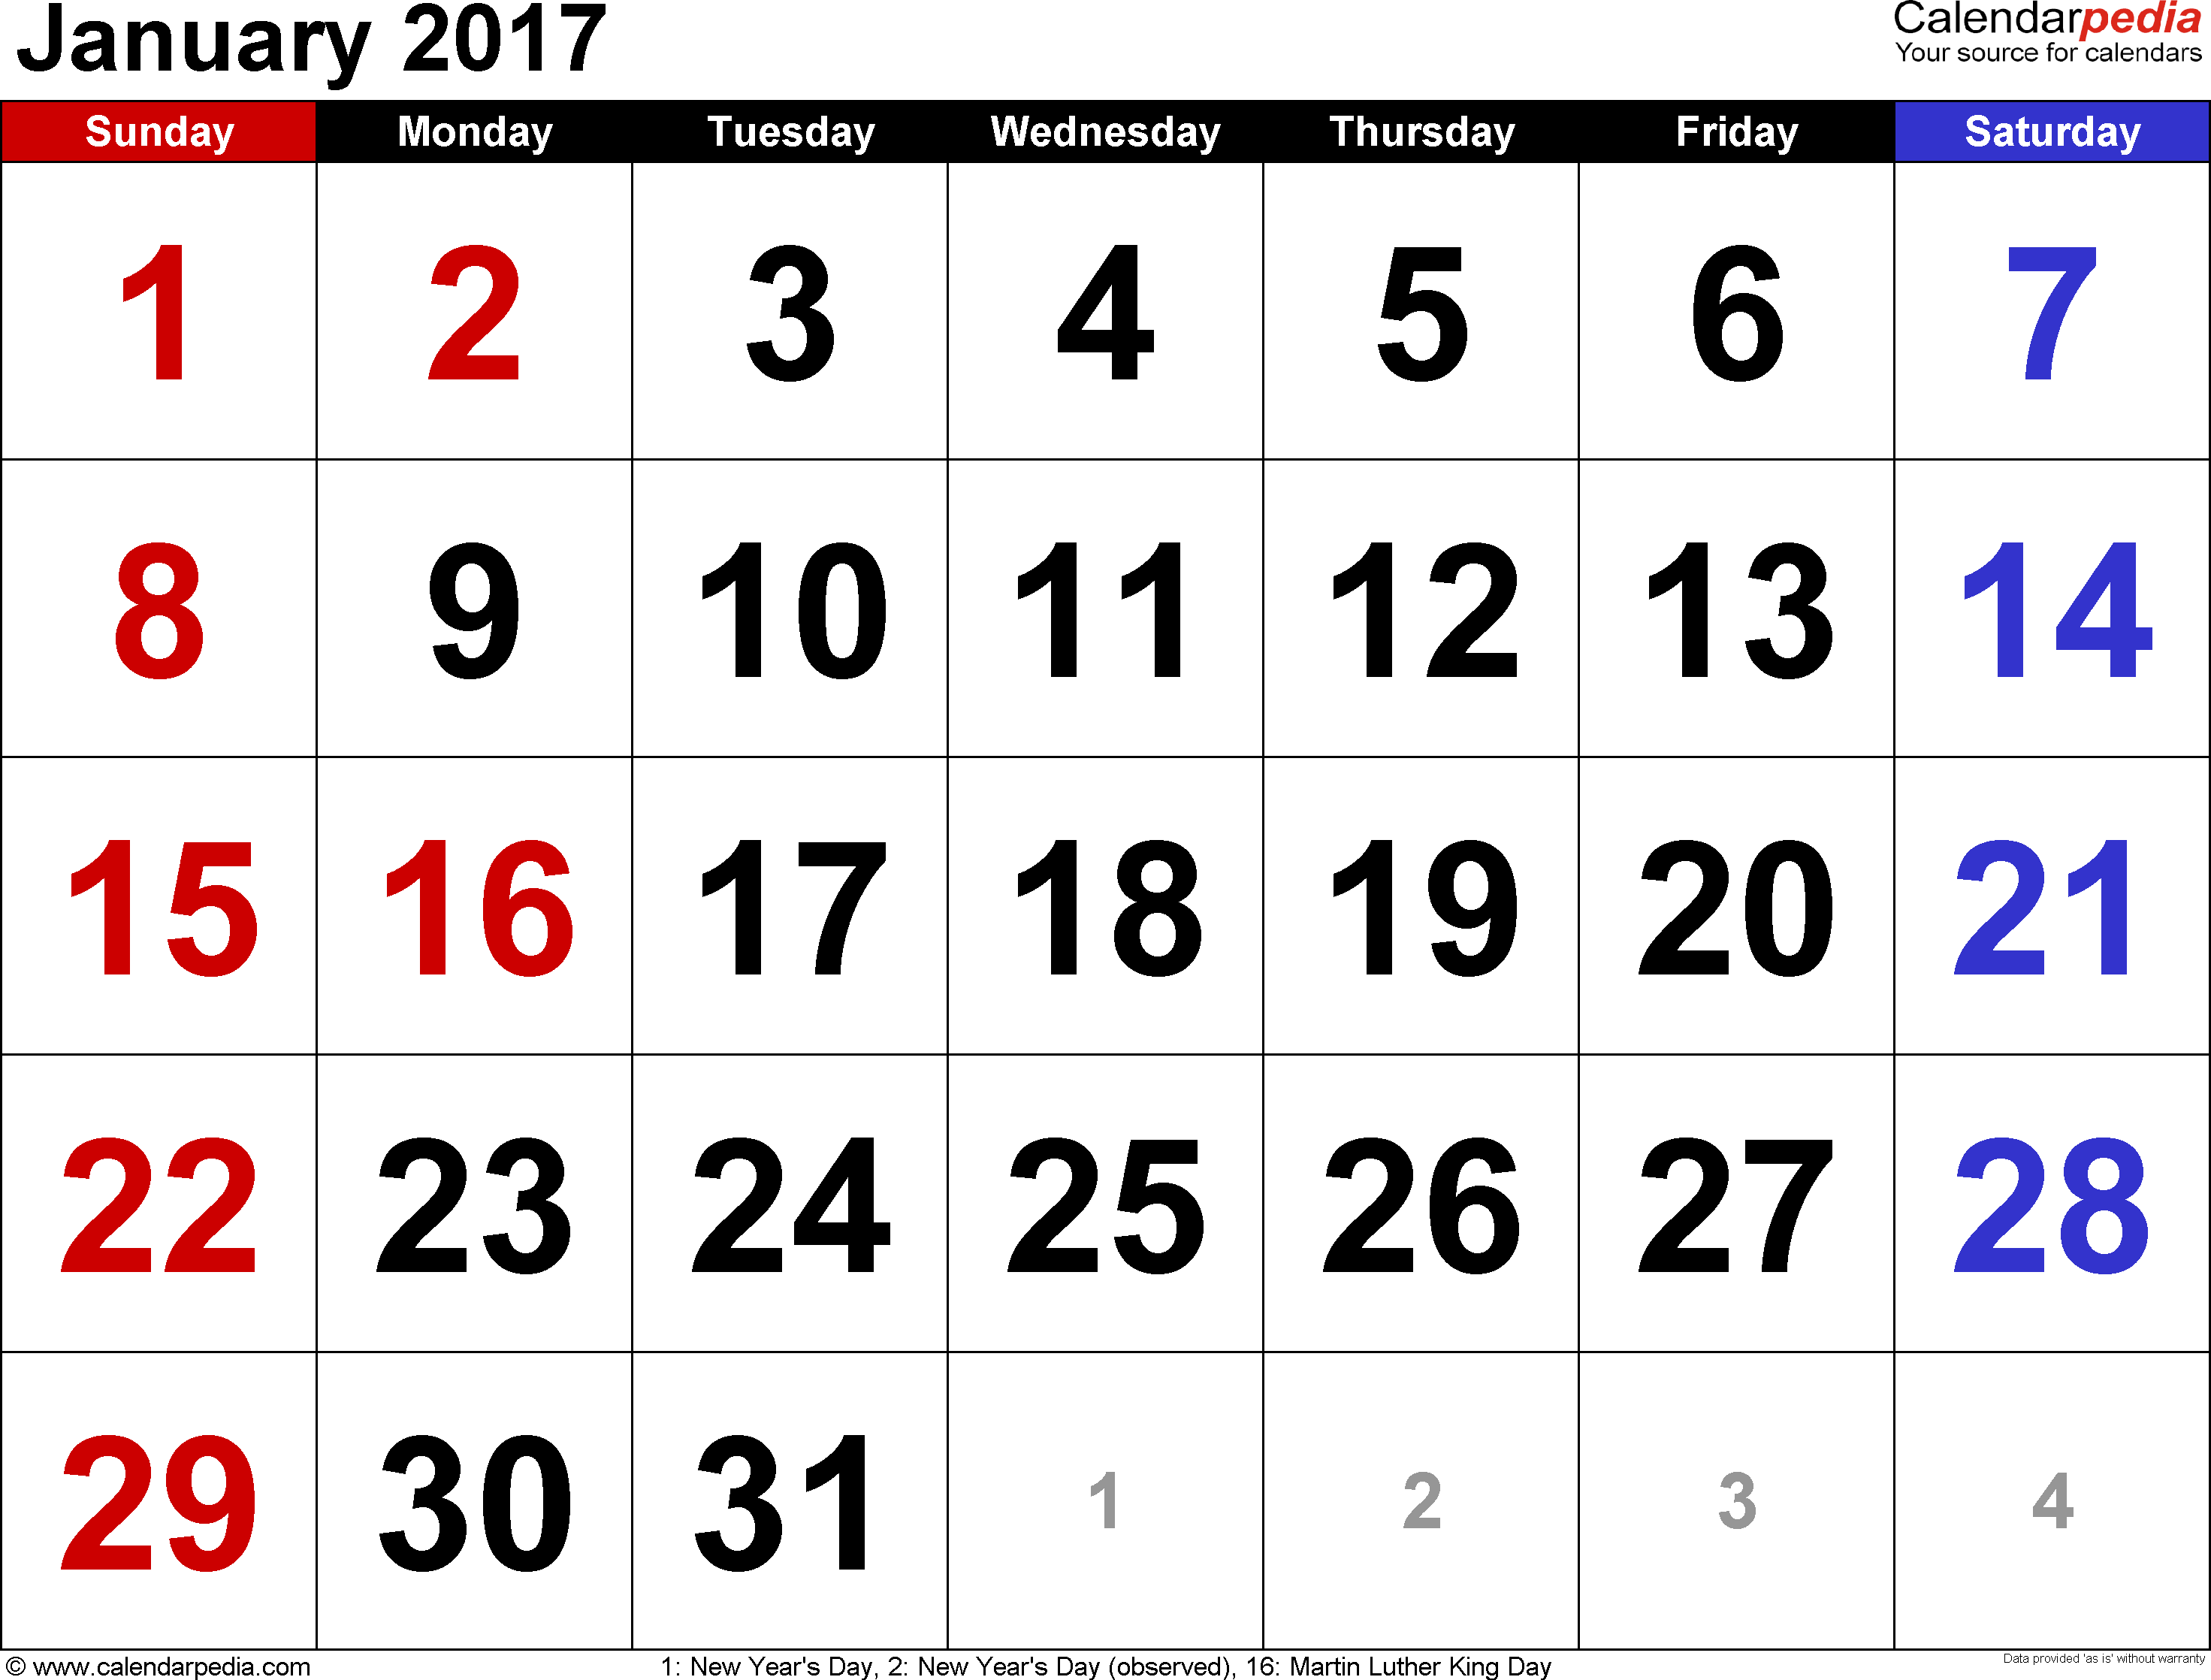 January 2017 calendar, landscape orientation, large numerals, available as printable templates for Word, Excel and PDF